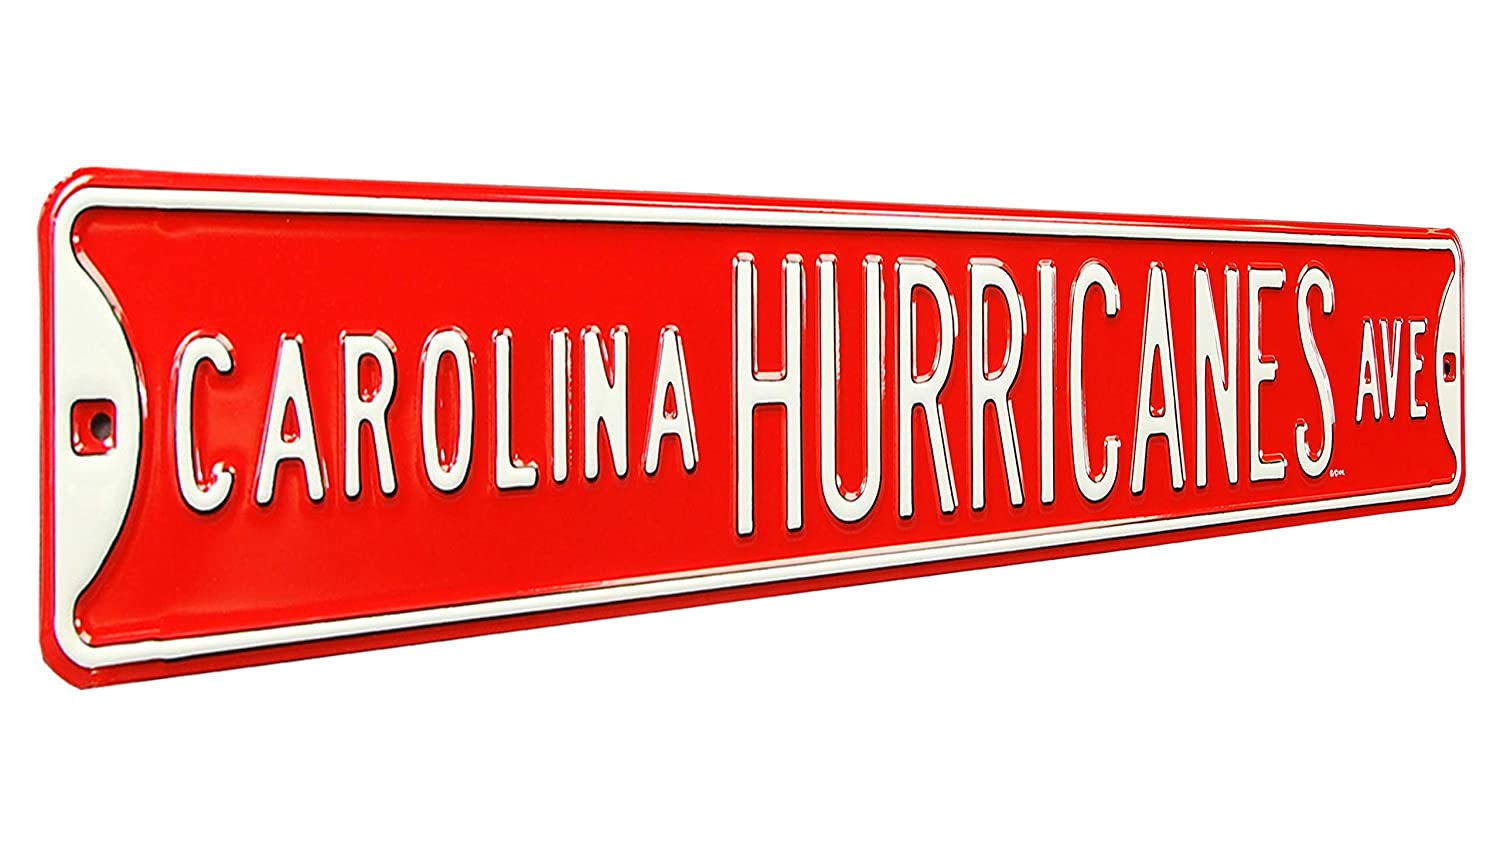 (Carolina Hurricanes, 90cm x 15cm ) - Authentic Street Signs NHL Officially Licenced, REAL 0.9m, Premium Grade Solid Steel Embossed STREET SIGN- Prime Wall Decor for Home, Office, Man Cave- Perfect Gift for Him B00FARY47S